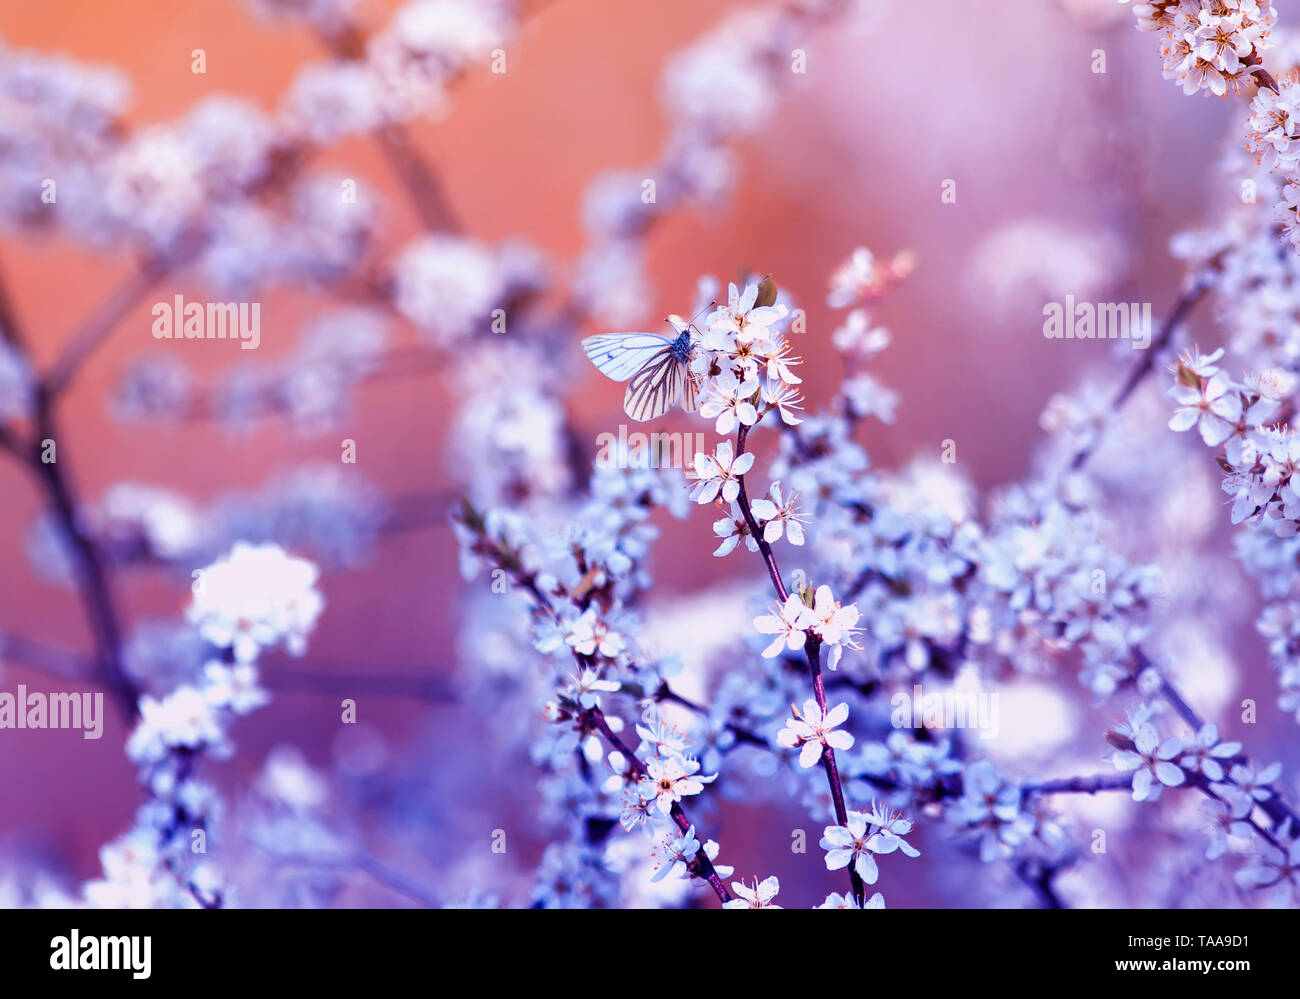 white small butterfly sitting on branches with fluffy fragrant flowers and shrub buds blossoming in May warm sunny garden in lilac flowers ah - Stock Image